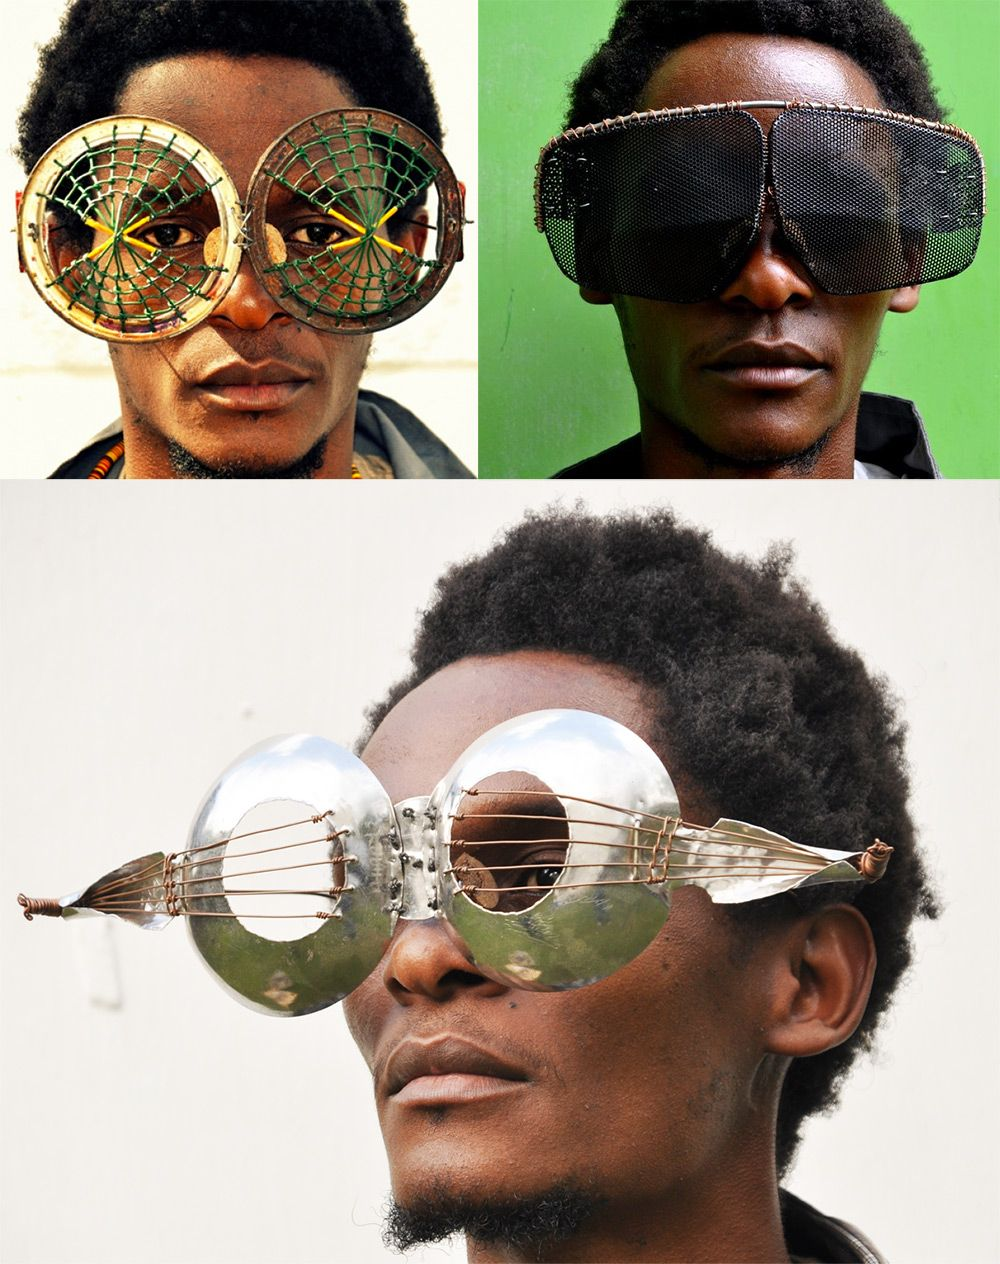 Kenyan Artist Digs Through Electronic Refuse and Found Metal to Create Dazzling Sculptural Eyewear